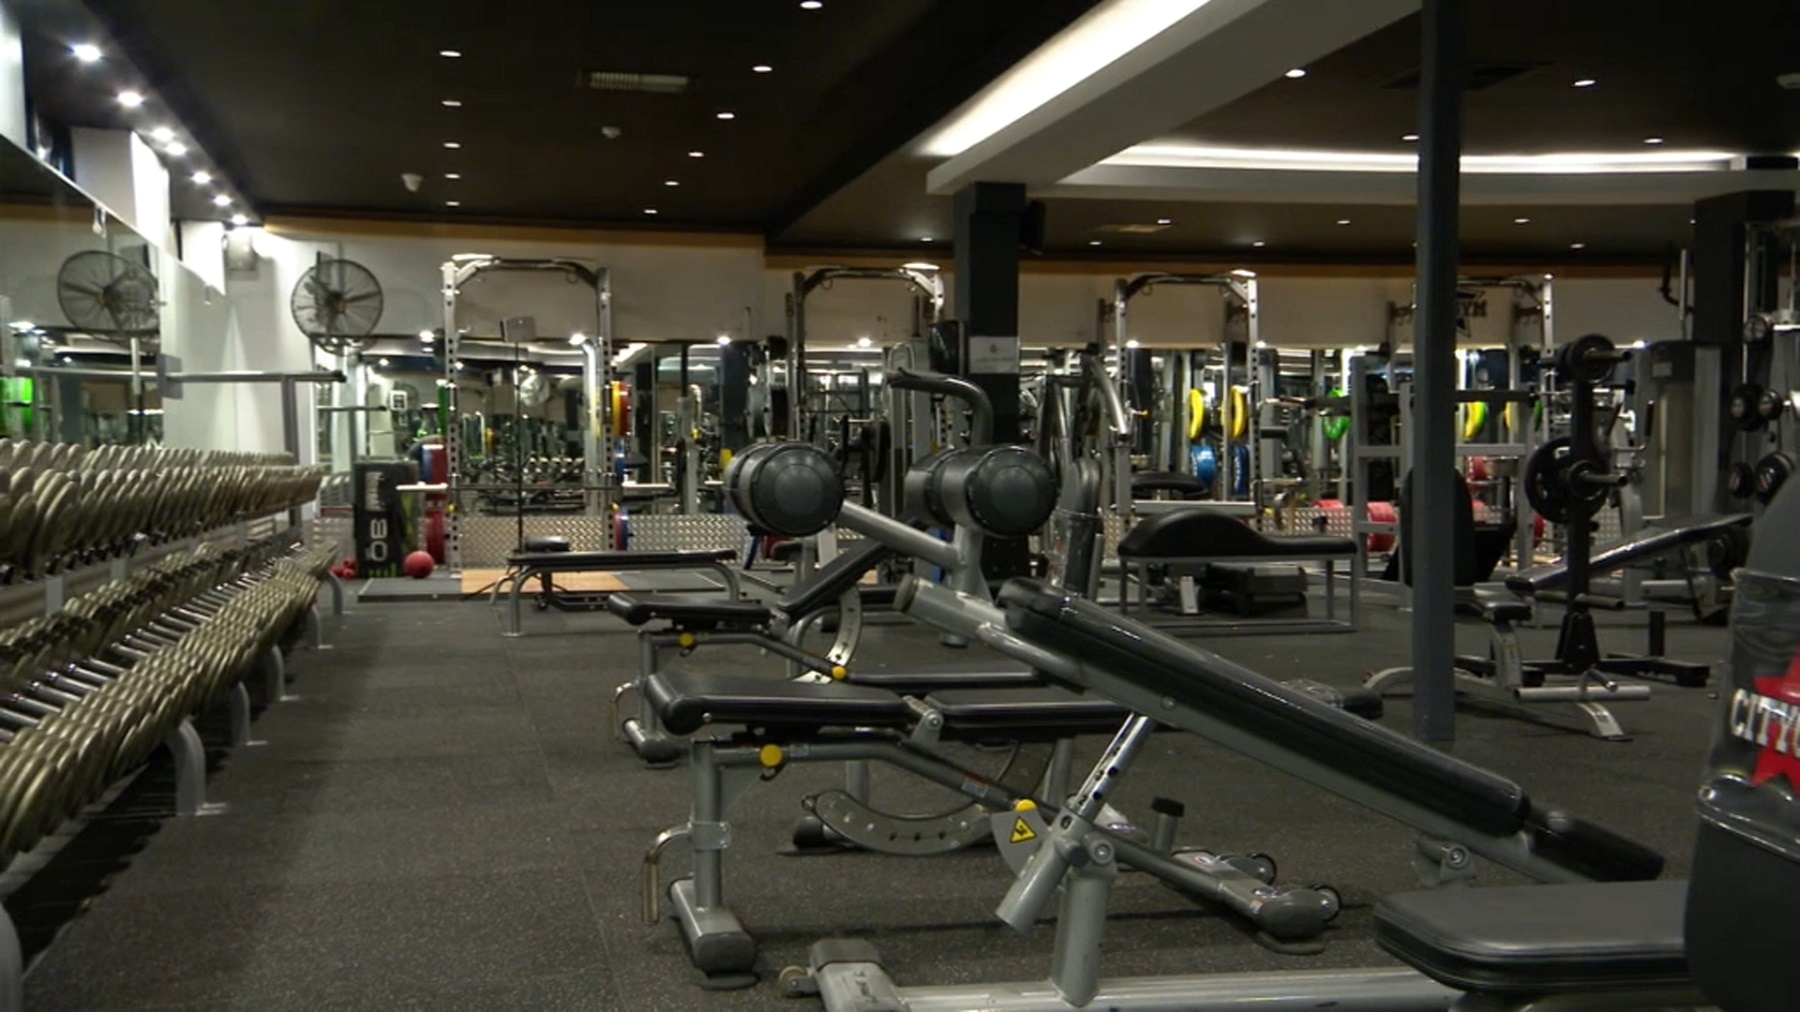 Australia's gyms will start to fill up again under stage two restrictions.